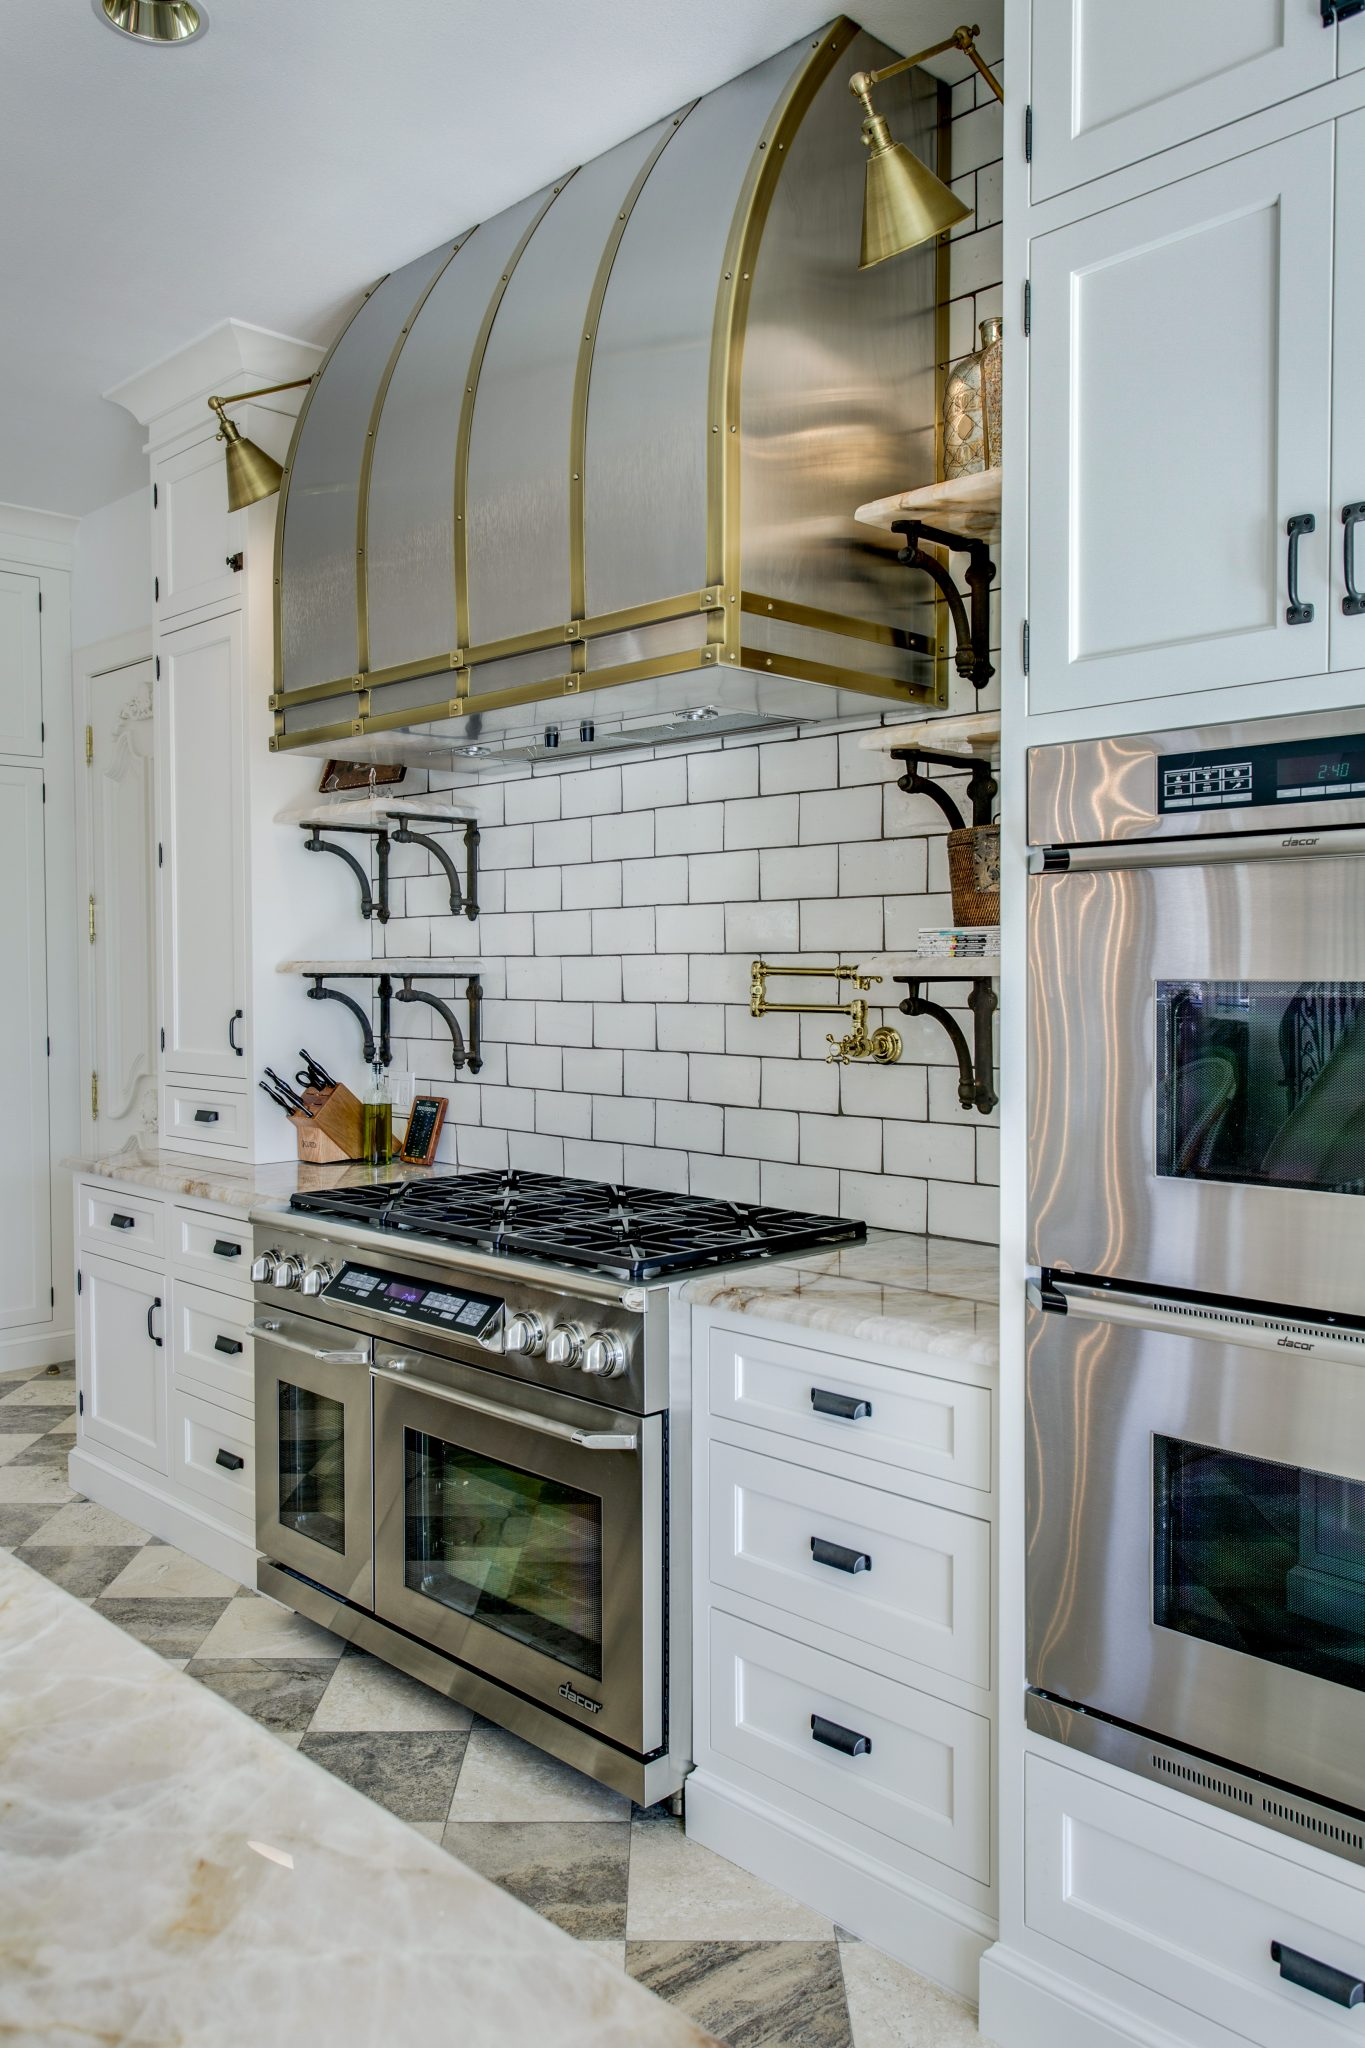 kitchen remodel dallas order cabinets online and bath remodeling design concepts traditional kitchens